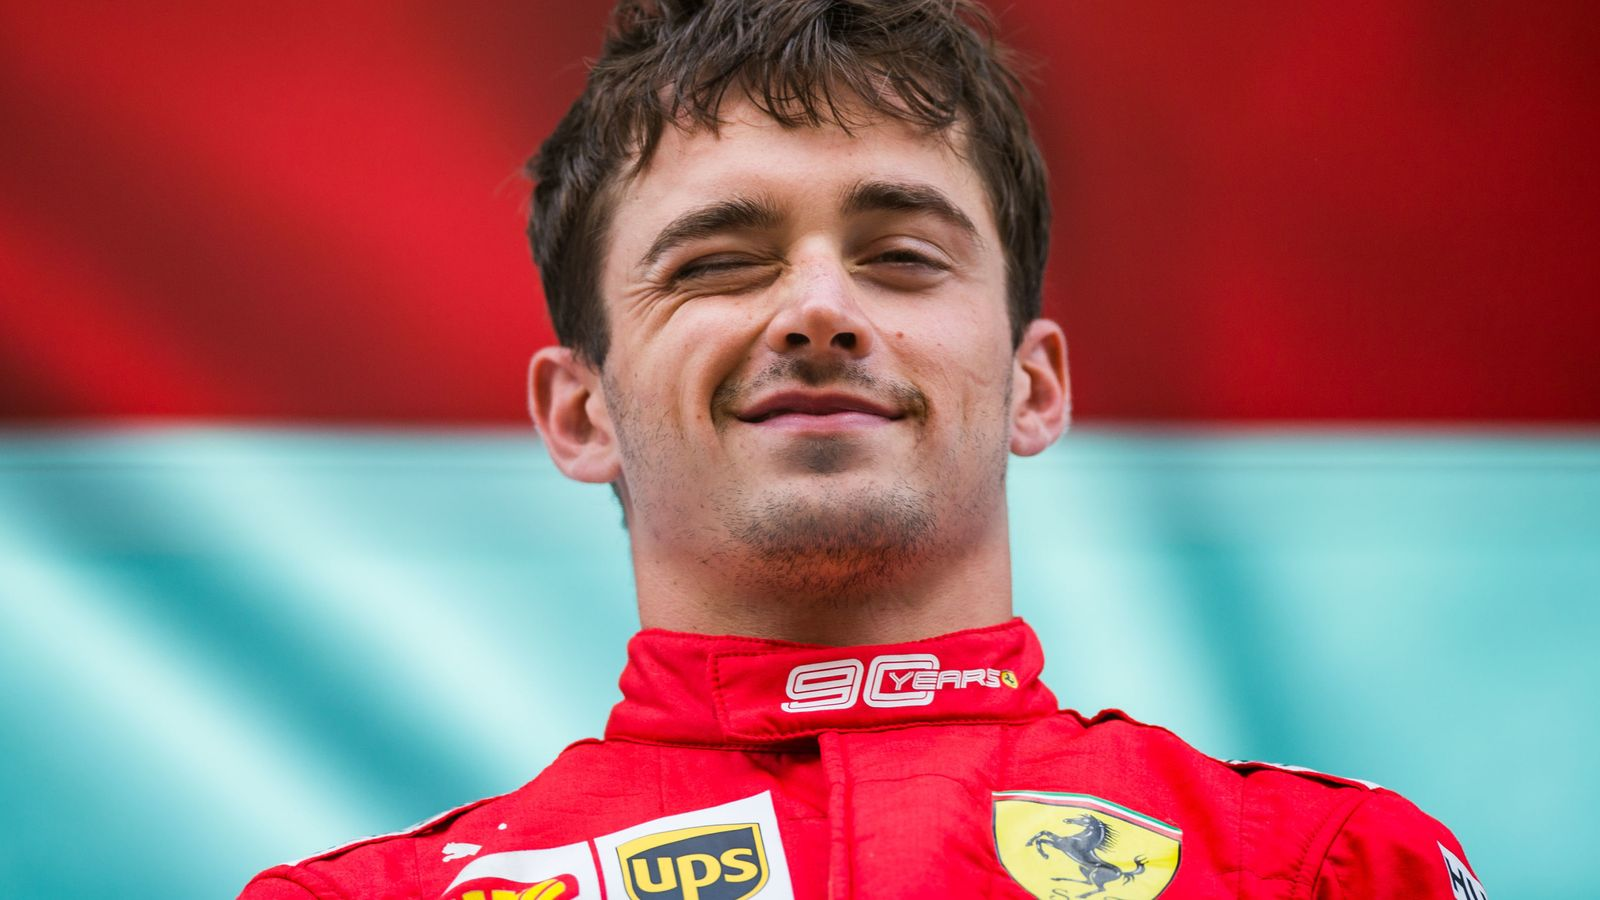 Leclerc holds off Albon for another win thumbnail